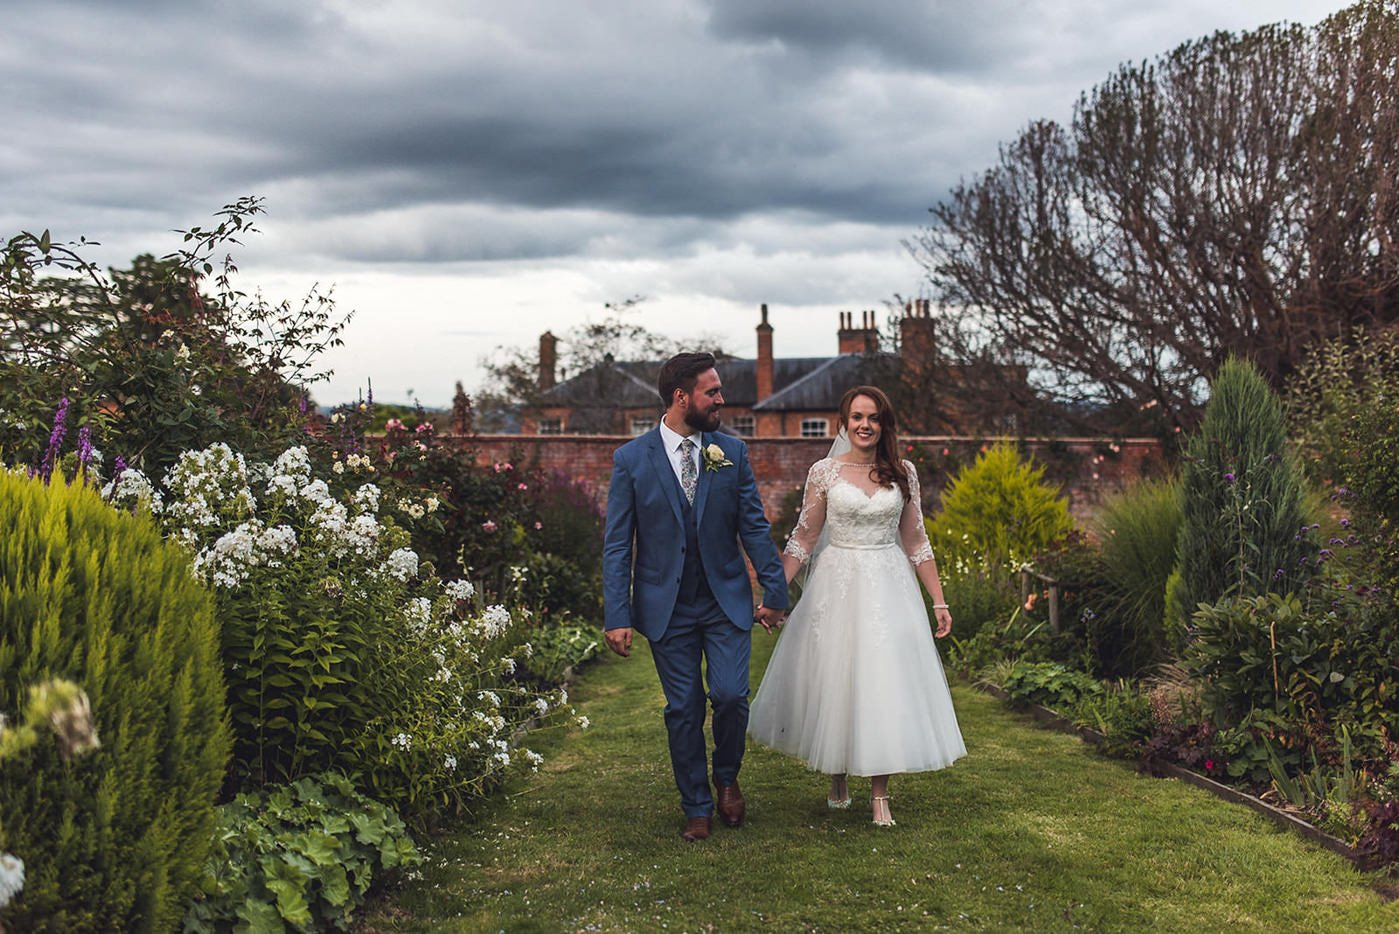 A bride and groom walk through walled garden at Homme House